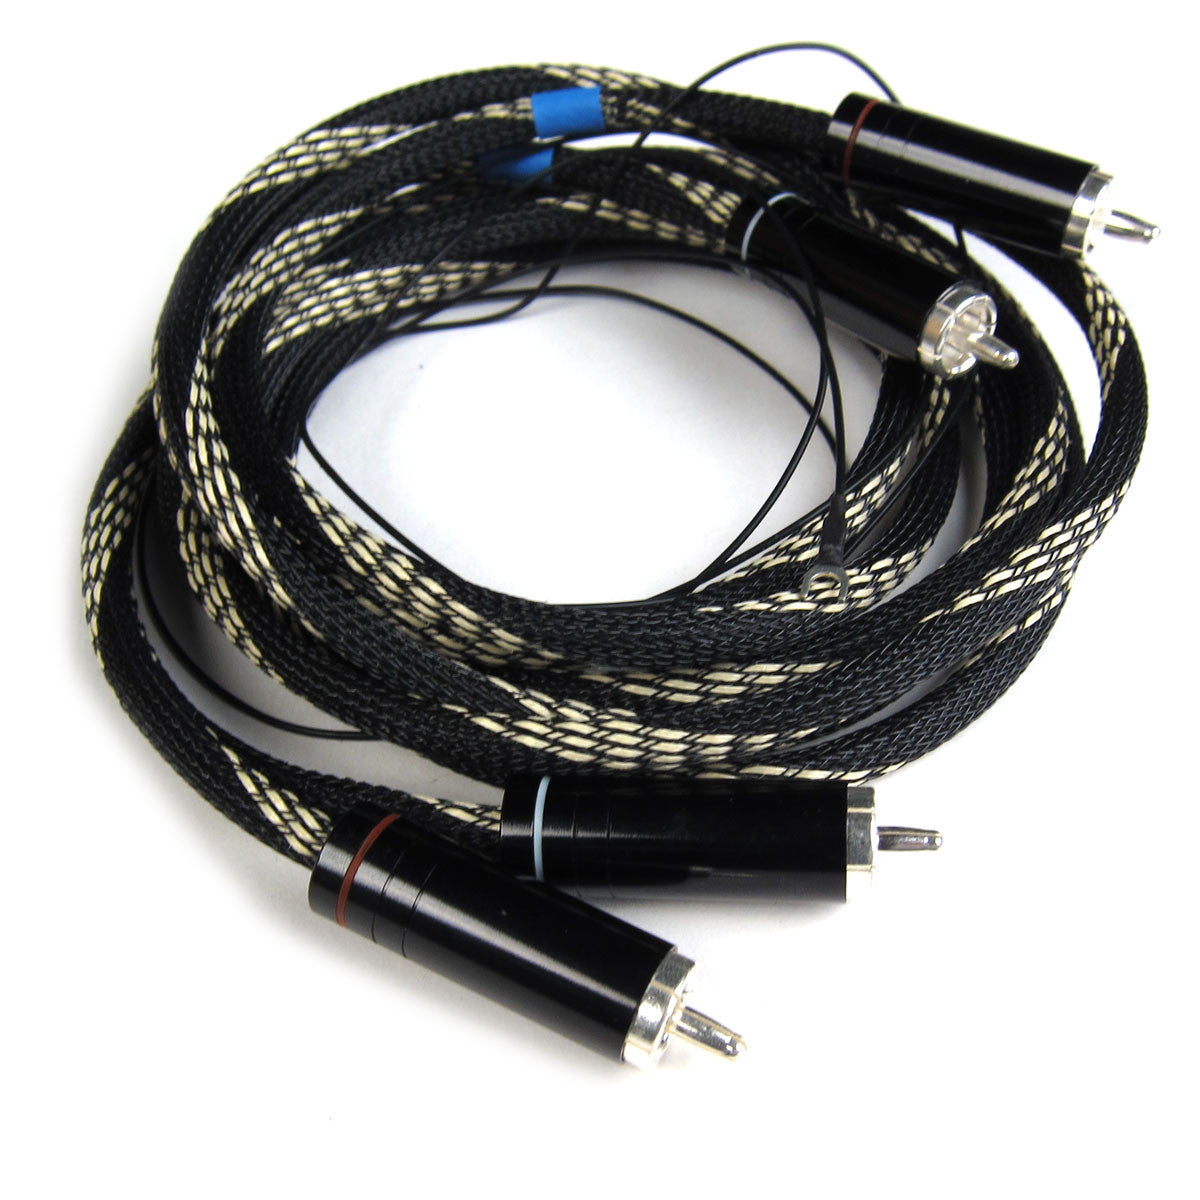 Pro-Ject: Connect It RCA Phono Interconnect Cable (1.2m)